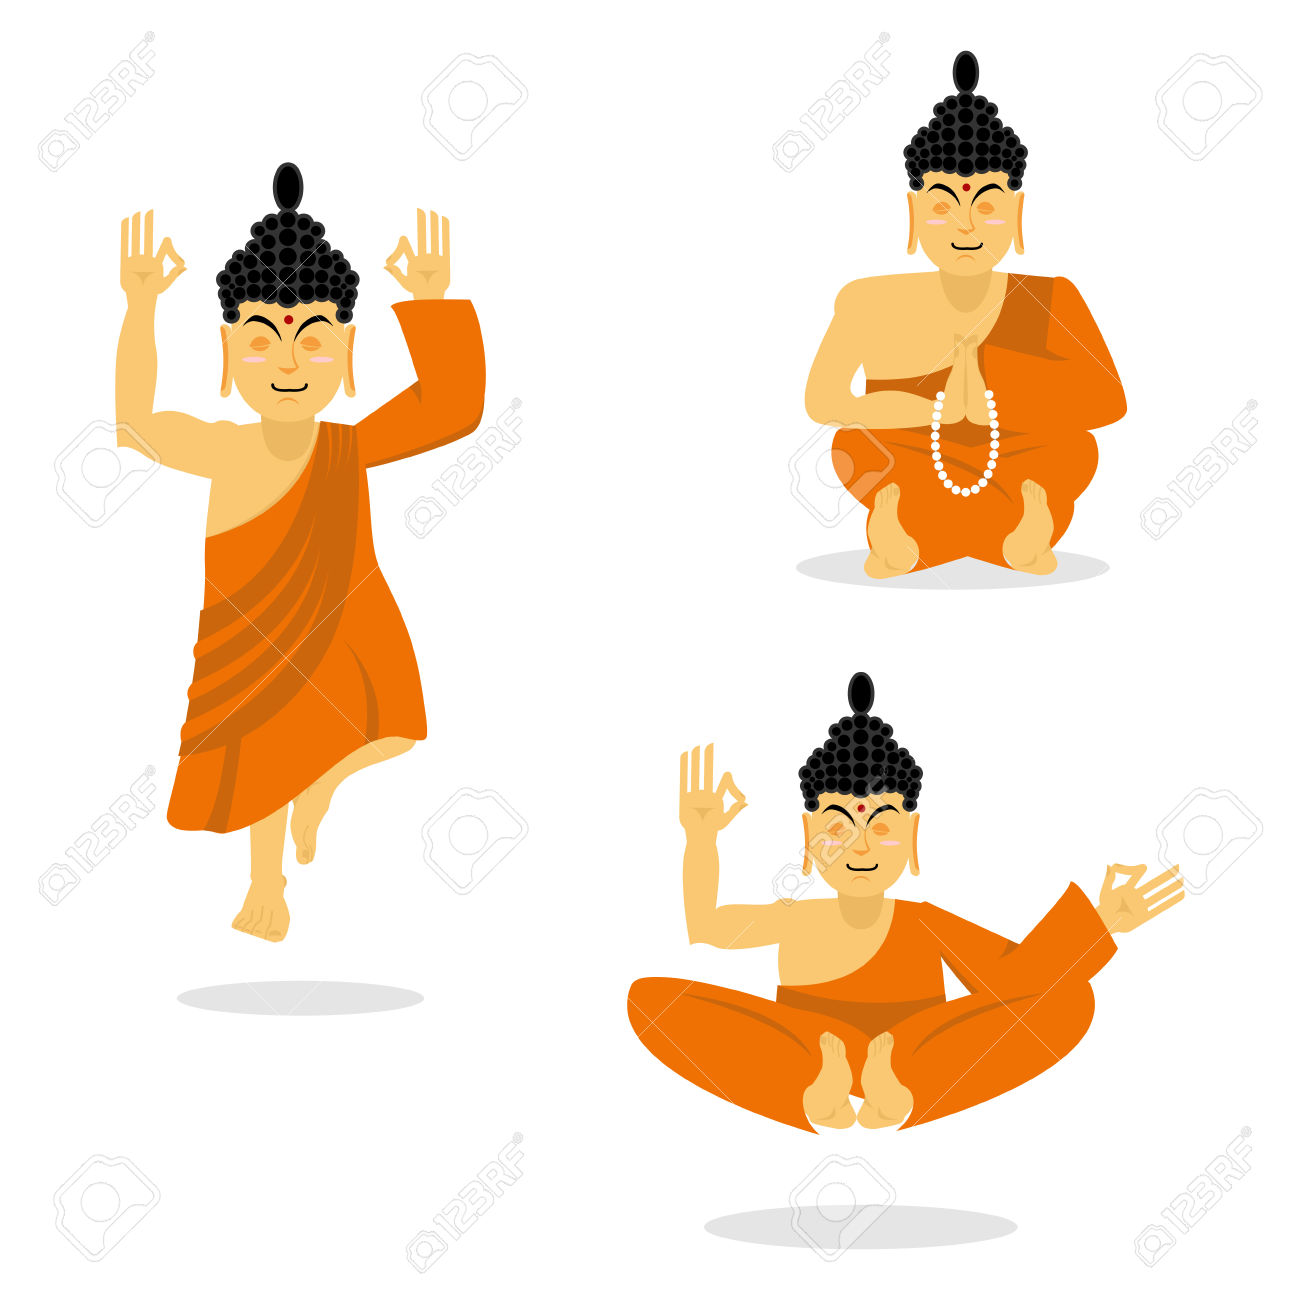 Buddhism and Enlightenment Clip Art.